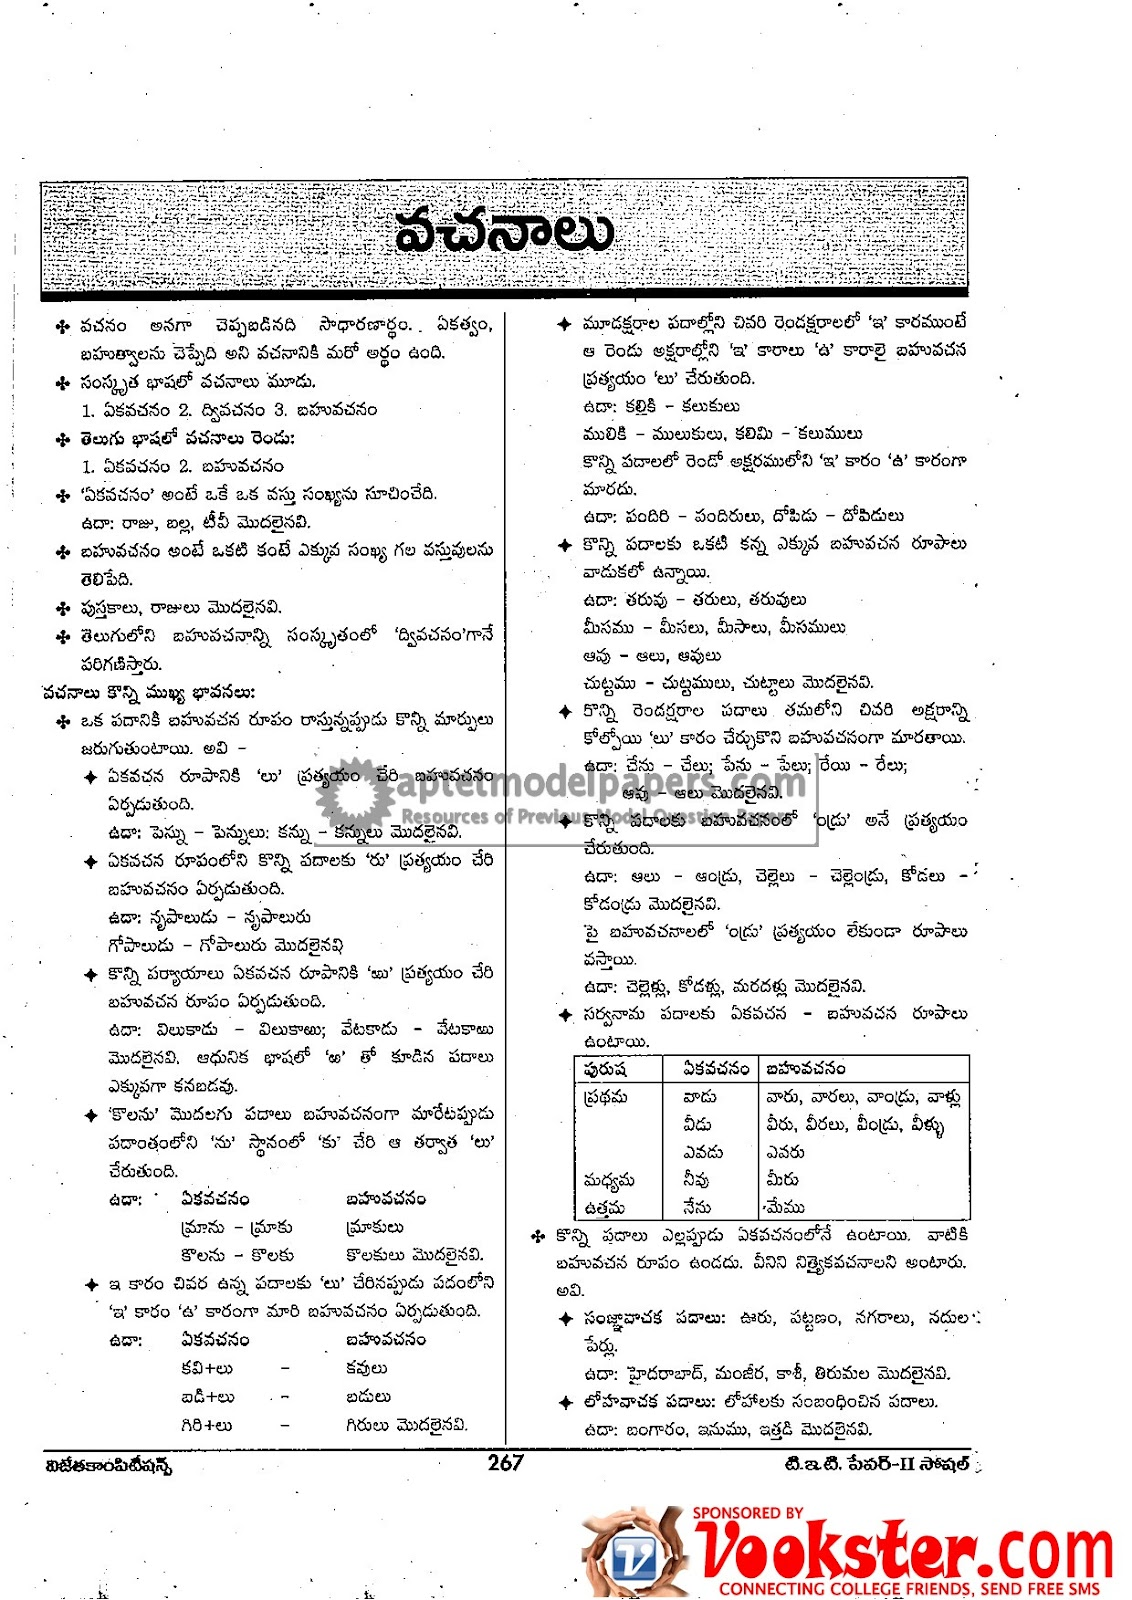 APTET Telugu Model Papers Syllabus 2010-2011 Pages of 51-55